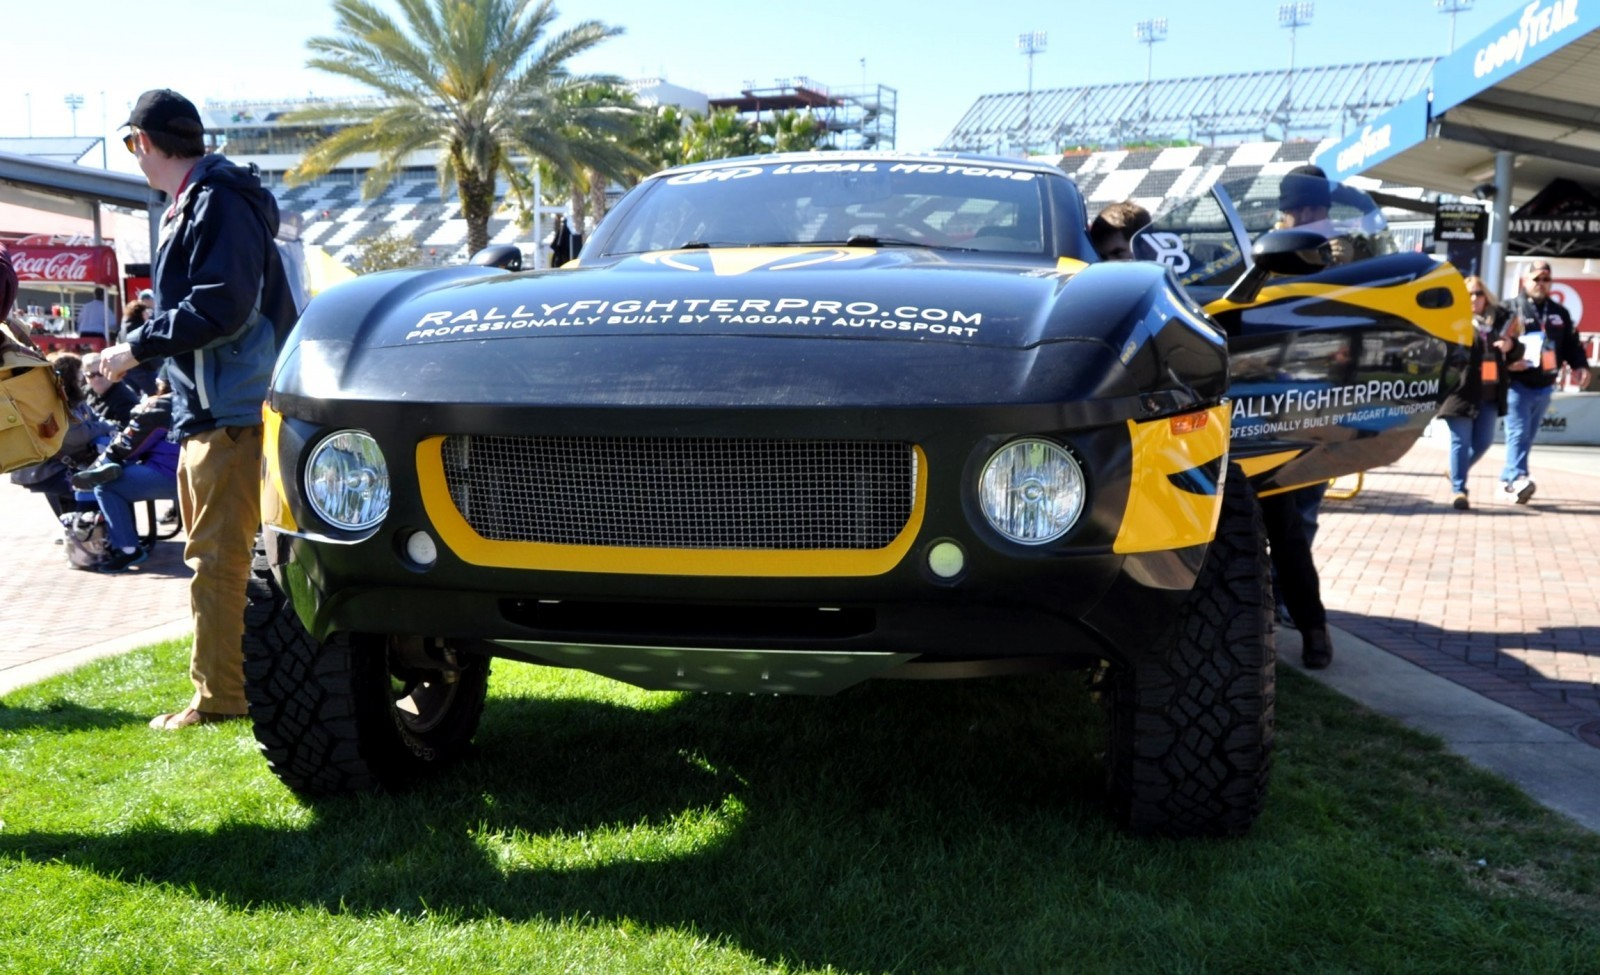 2015 Rally Fighter PRO By Taggart Autosport 36